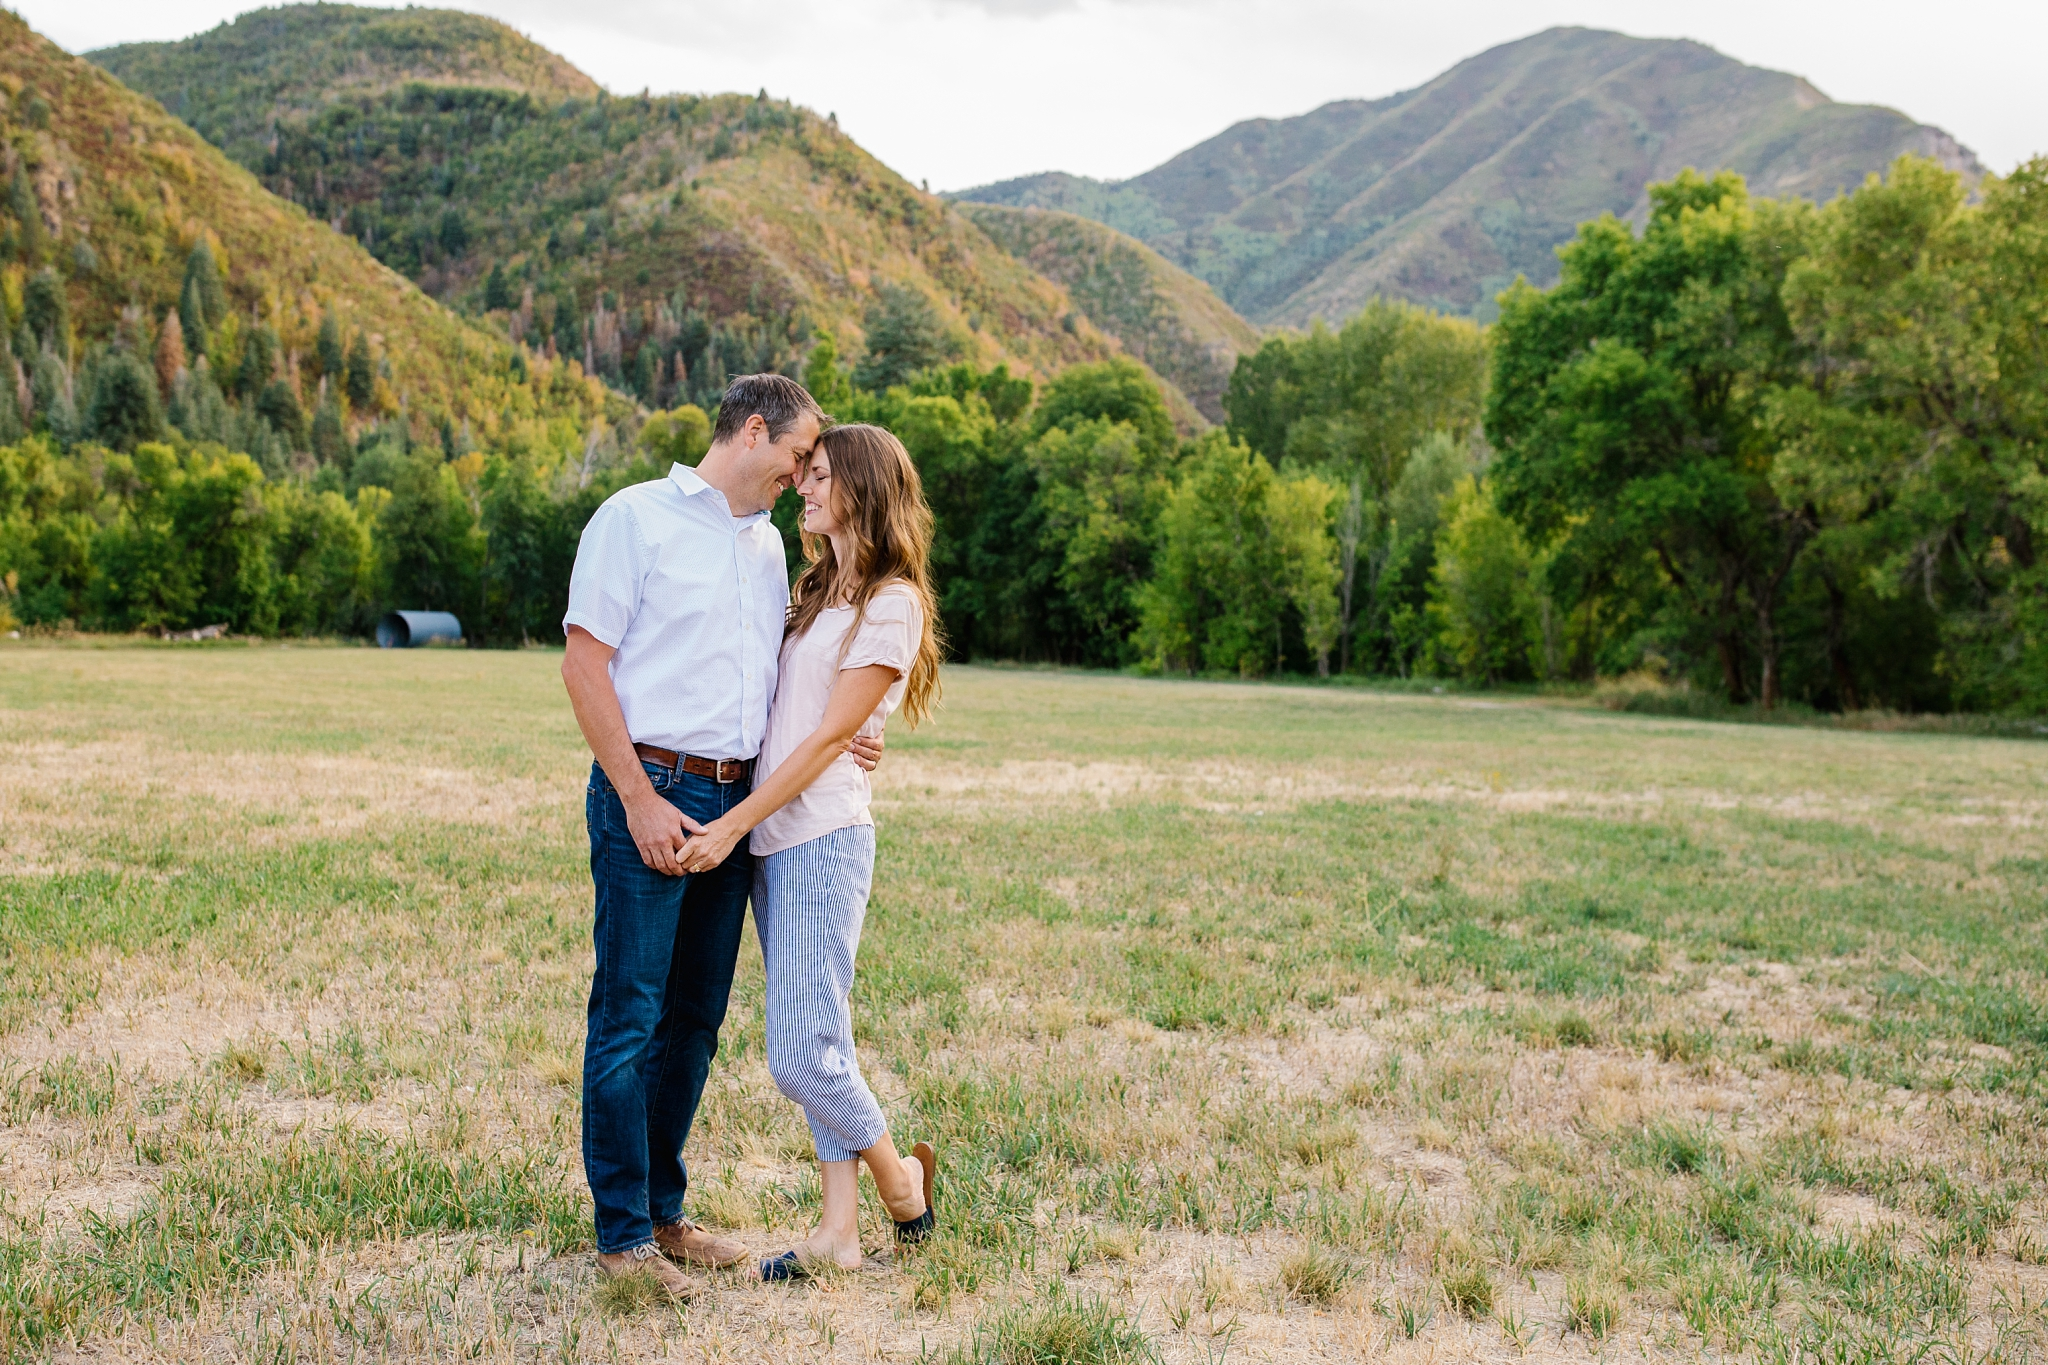 Overly-27_Lizzie-B-Imagery-Utah-Family-Photographer-Park-City-Family-Photography-Utah-County-Family-Photographer-Salt-Lake-City-Central-Utah.jpg